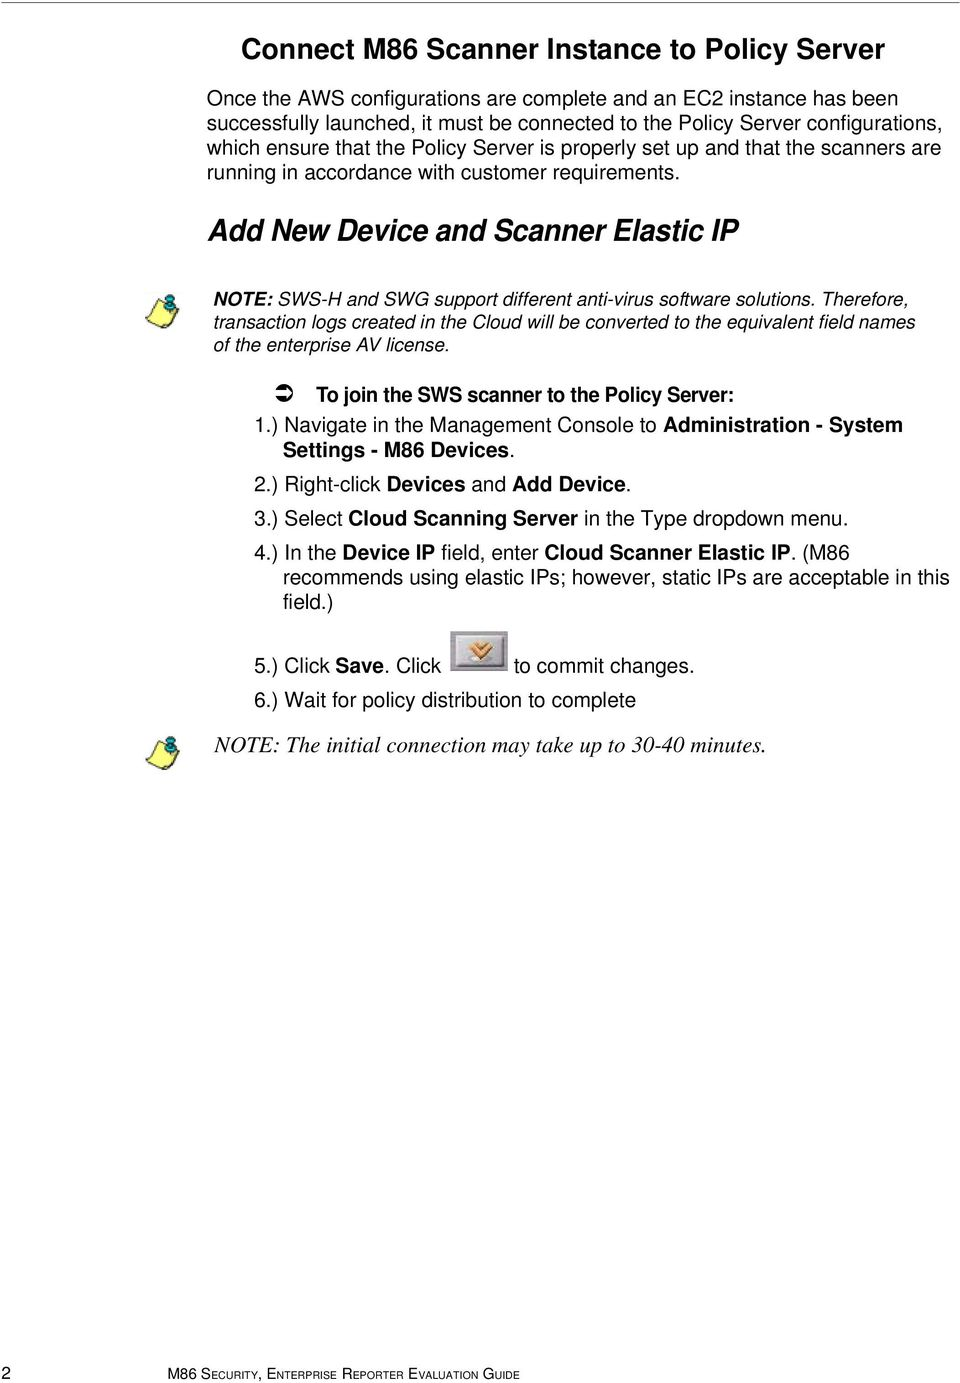 Add New Device and Scanner Elastic IP NOTE: SWS-H and SWG support different anti-virus software solutions.